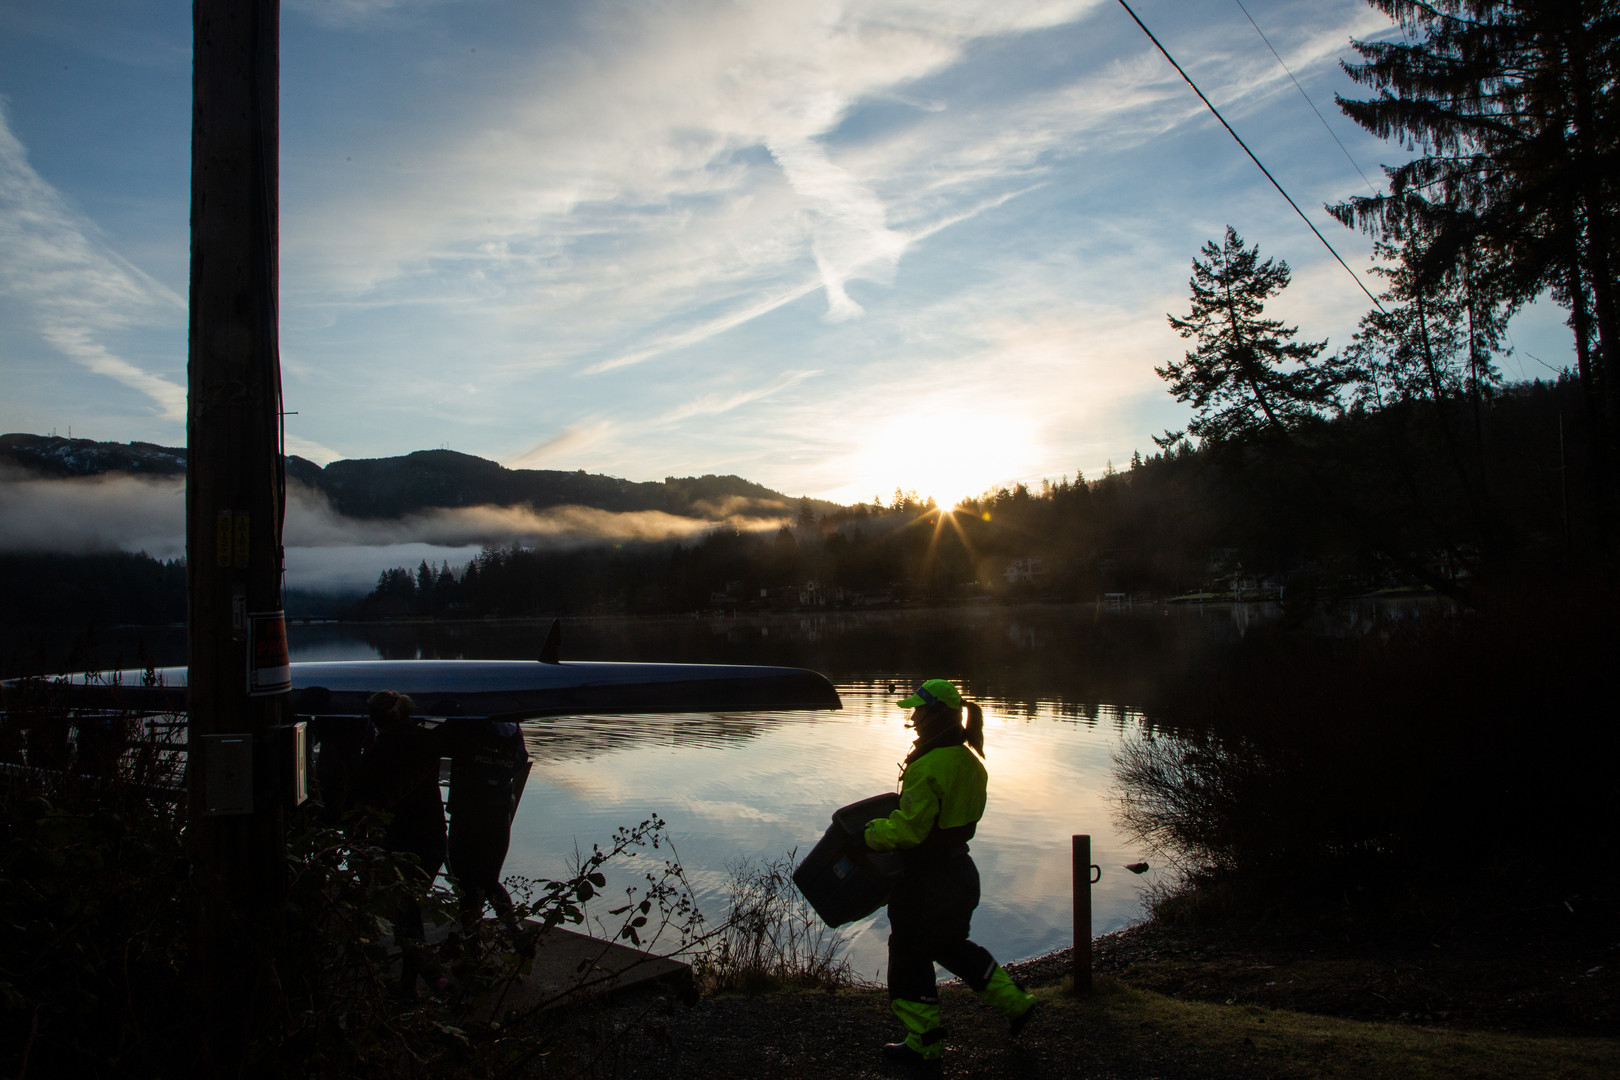 Jonah Bettger in full coxswain gear, follows her rowing team to the dock to prepare for early morning practice on Lake Samish, Washington.